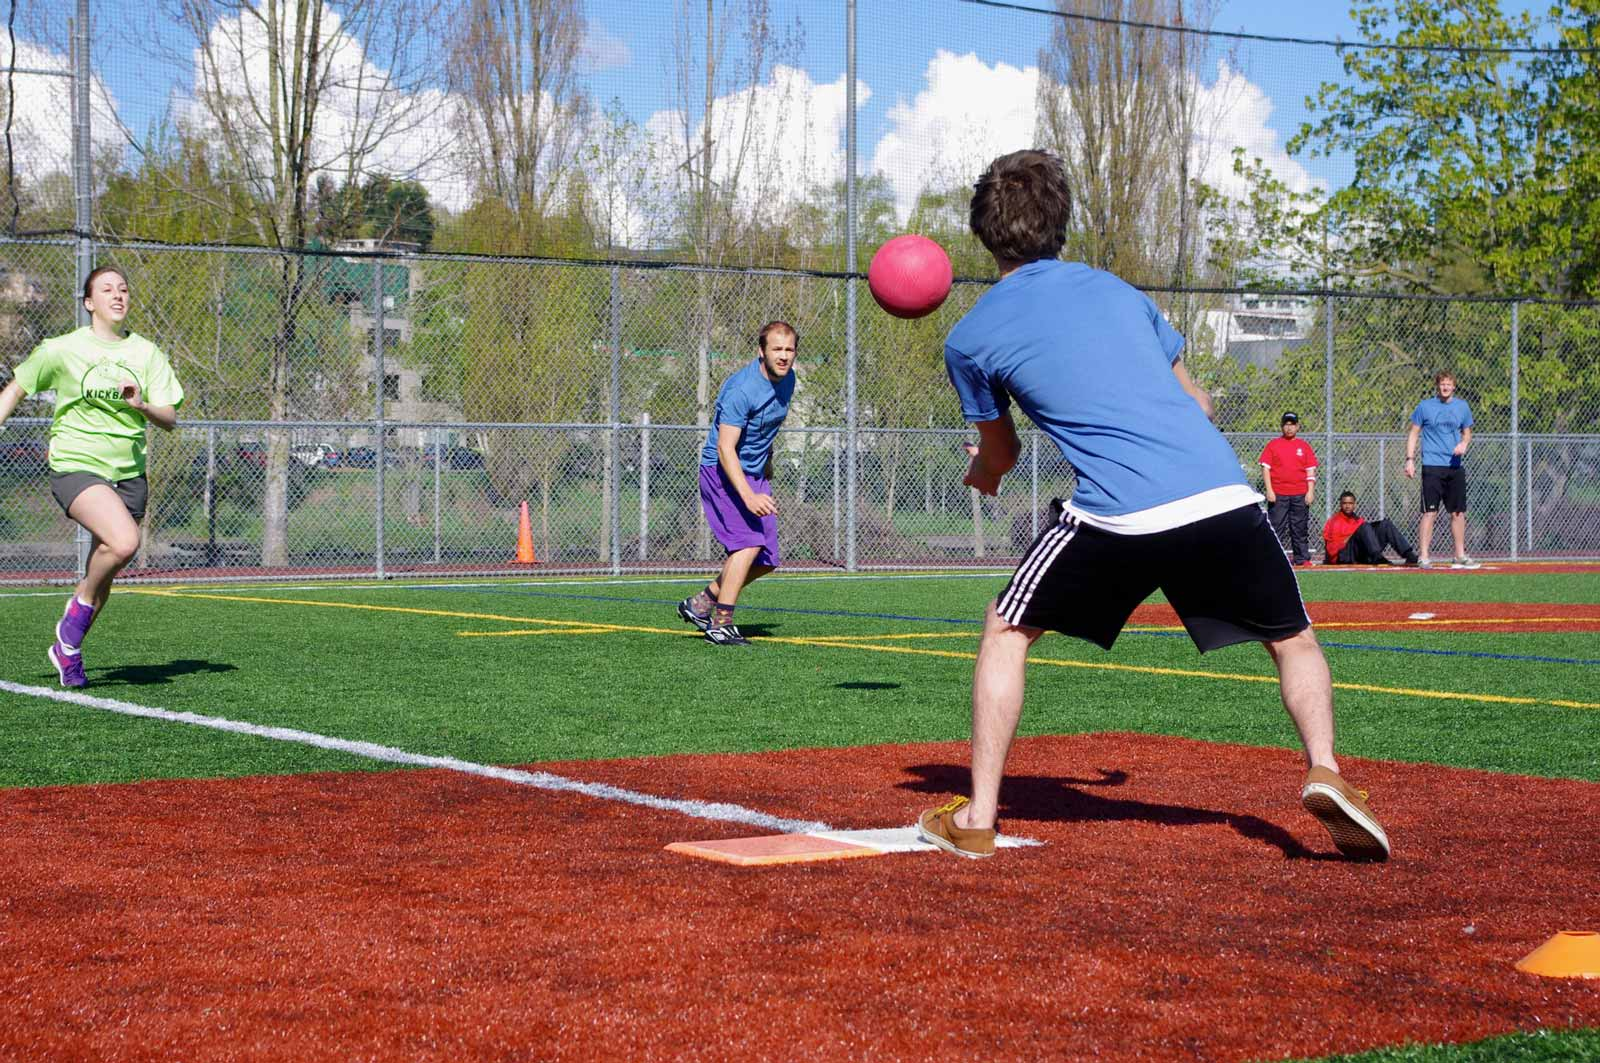 Intramural Sports: Finding community with student teams | SPU Voices